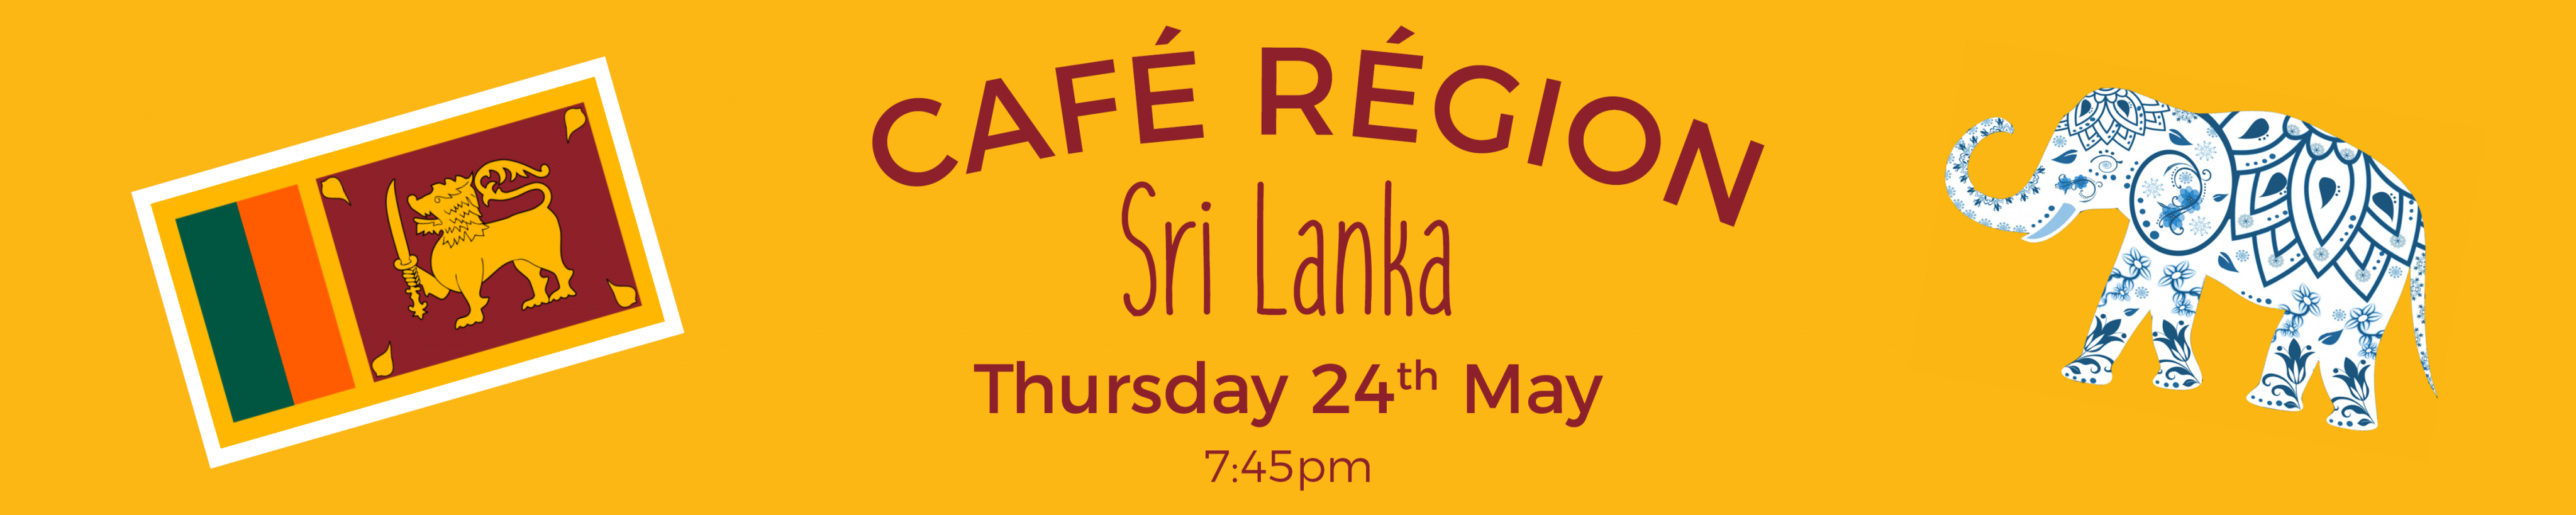 CAFE REGION - SRI LANKA